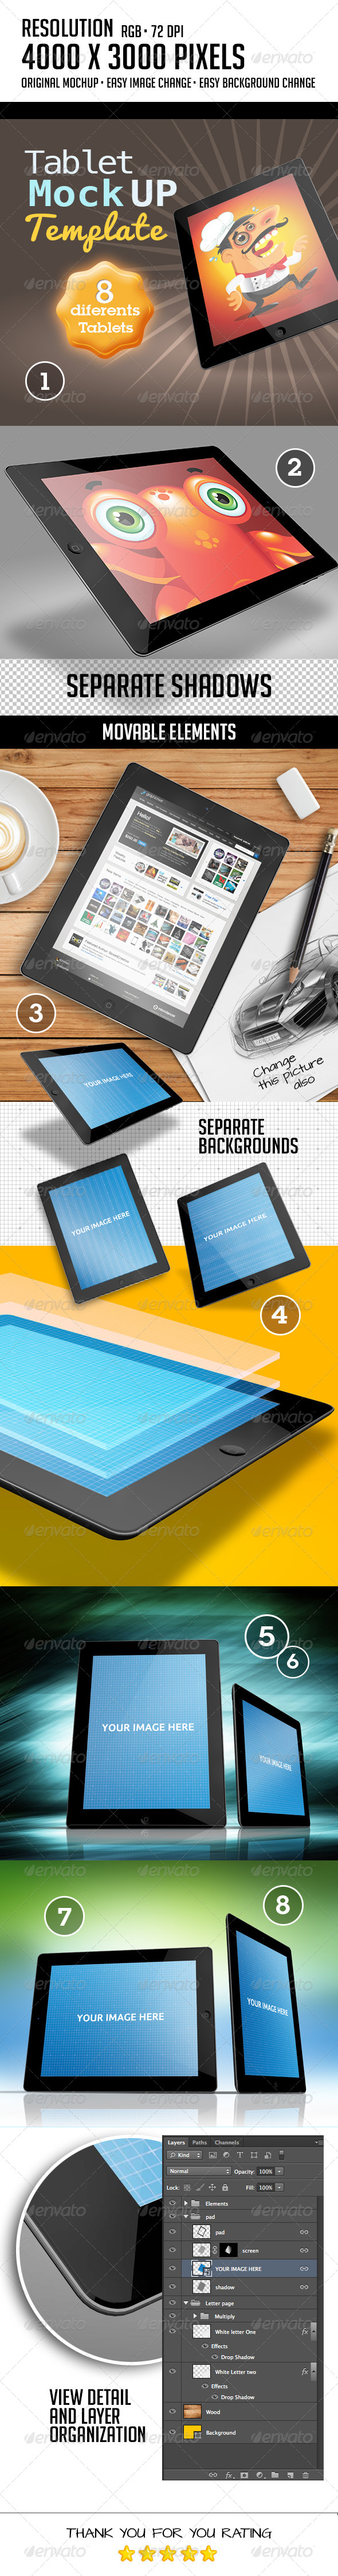 8 Dynamic Pads Muck-Up - Mobile Displays